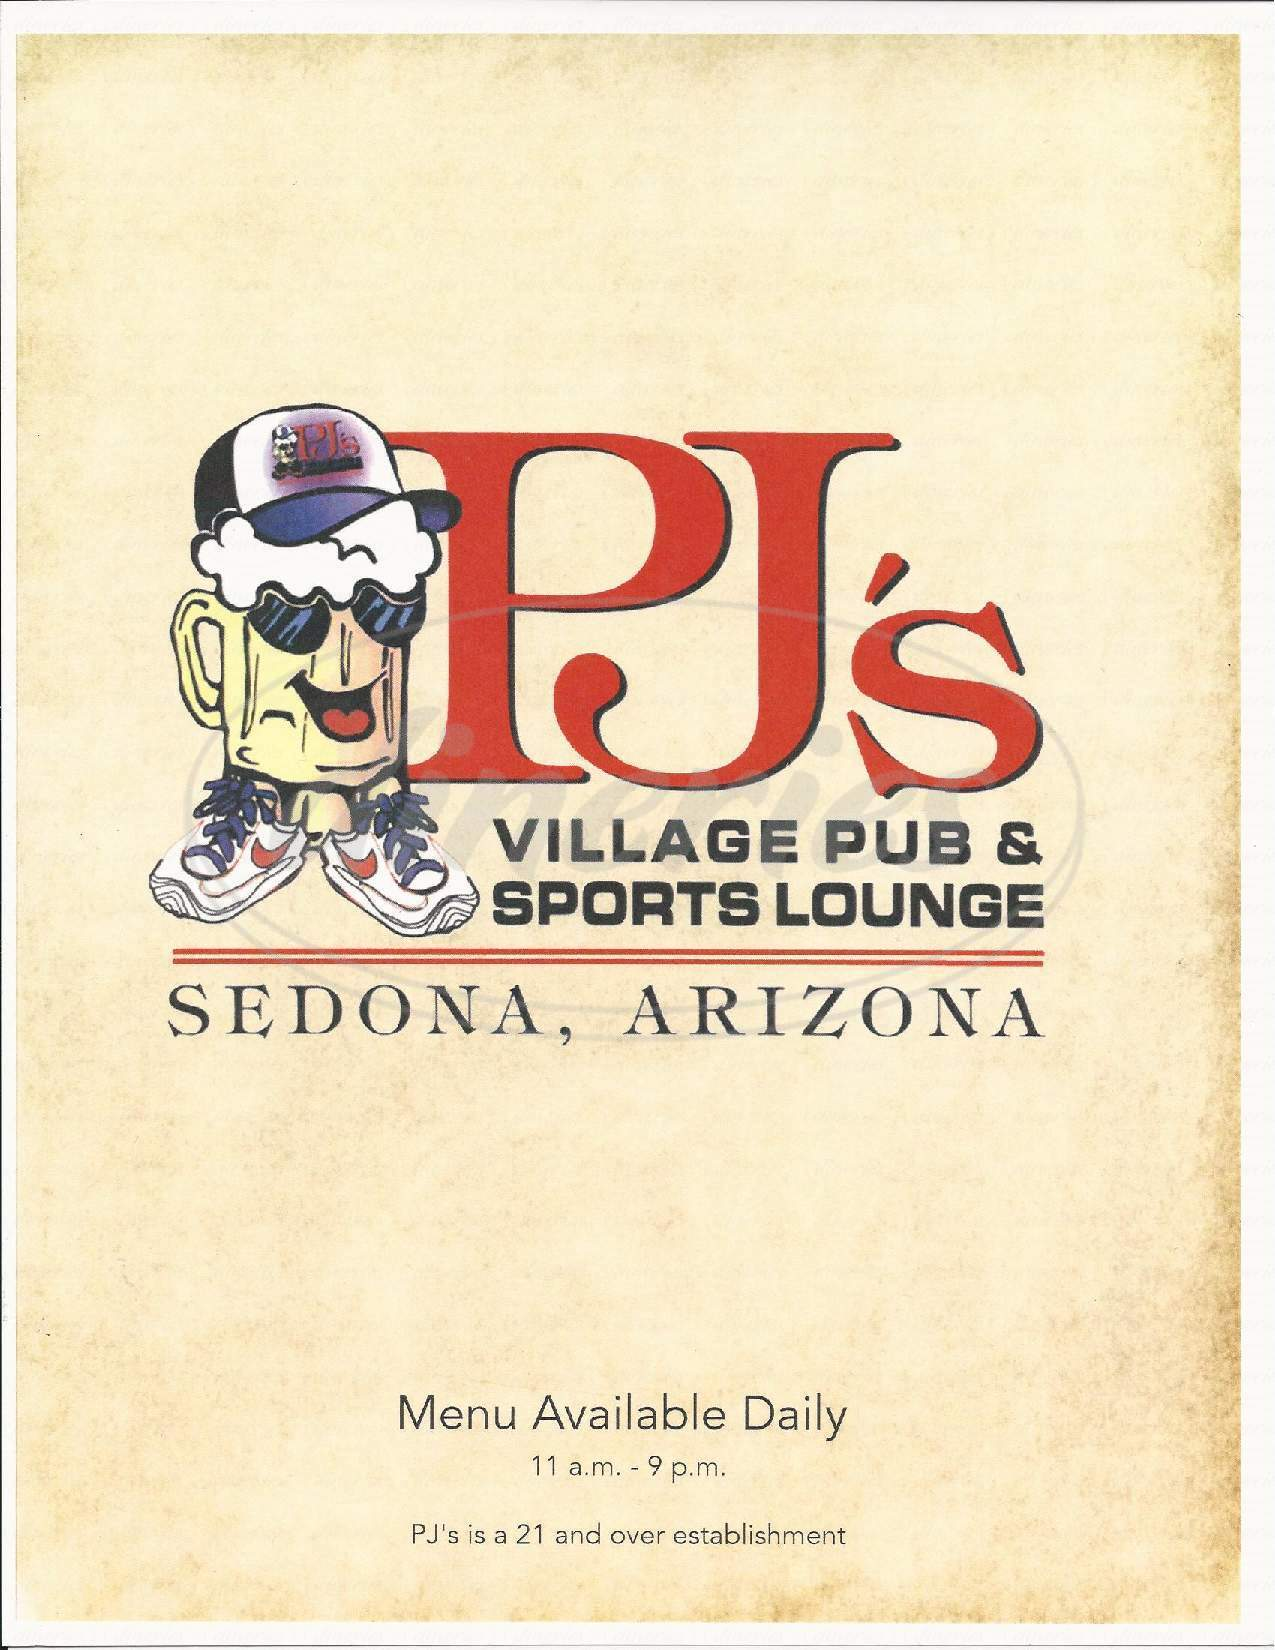 menu for PJ's Village Pub